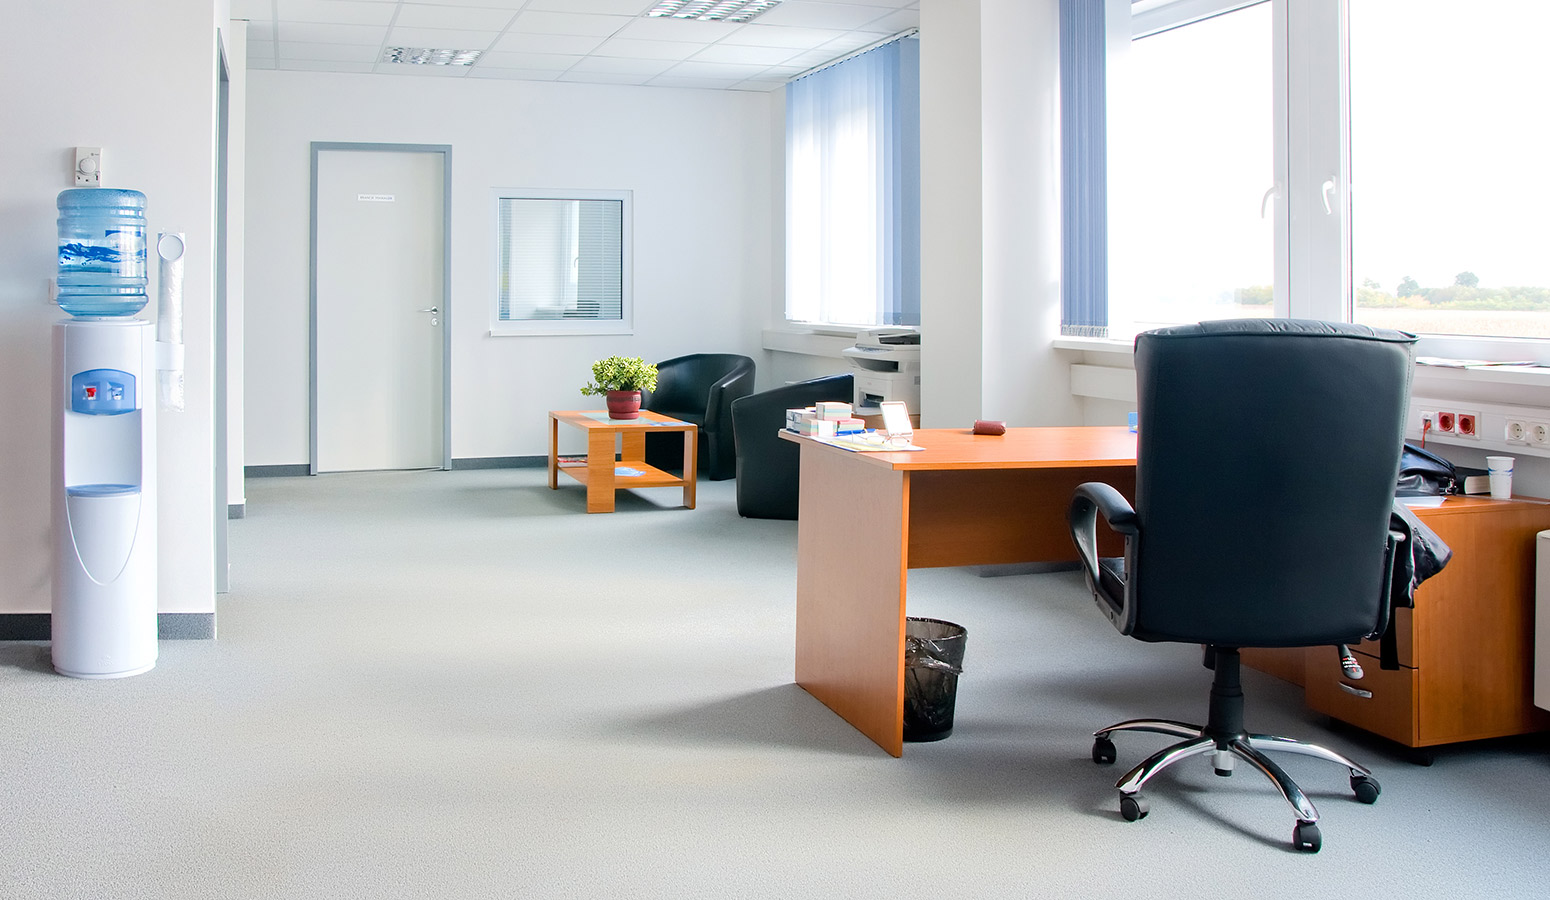 Beau Office Cleaning Services